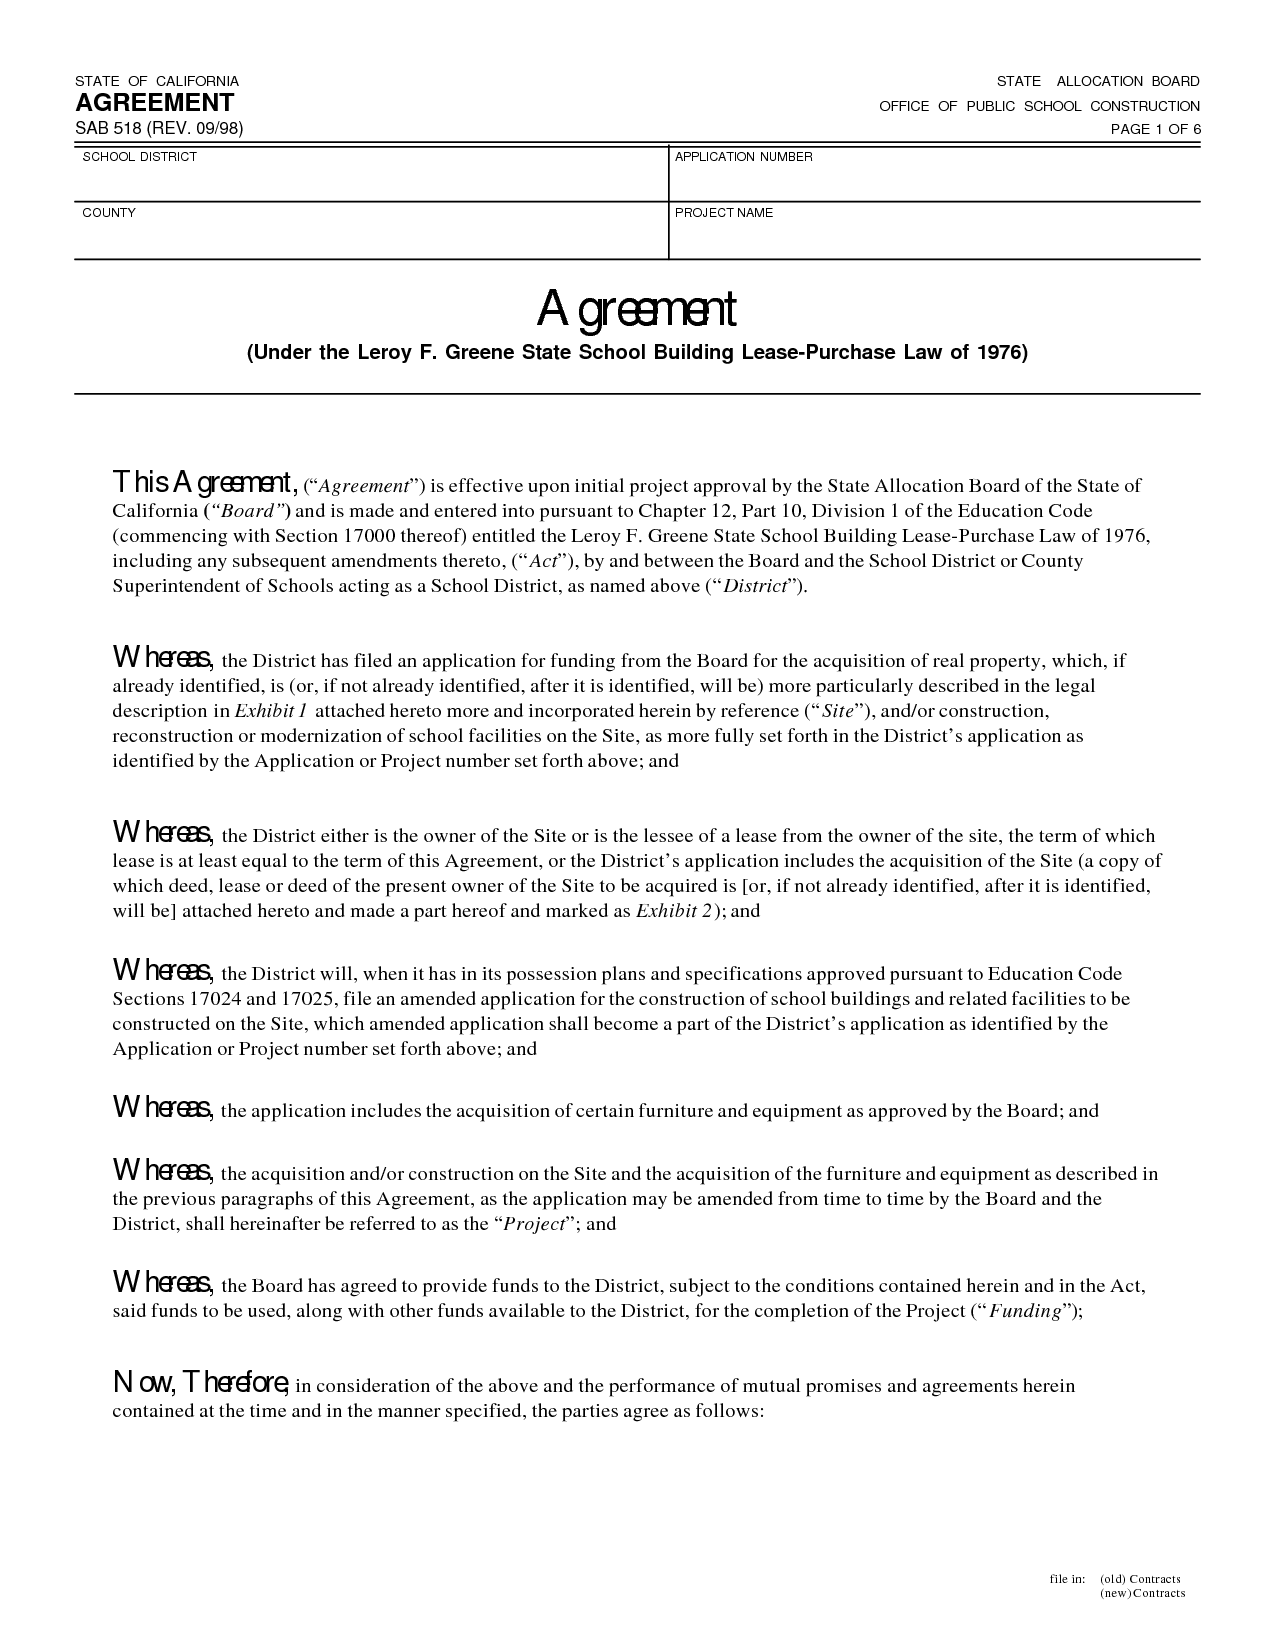 Agreement Business Templates – Free Business Purchase Agreement